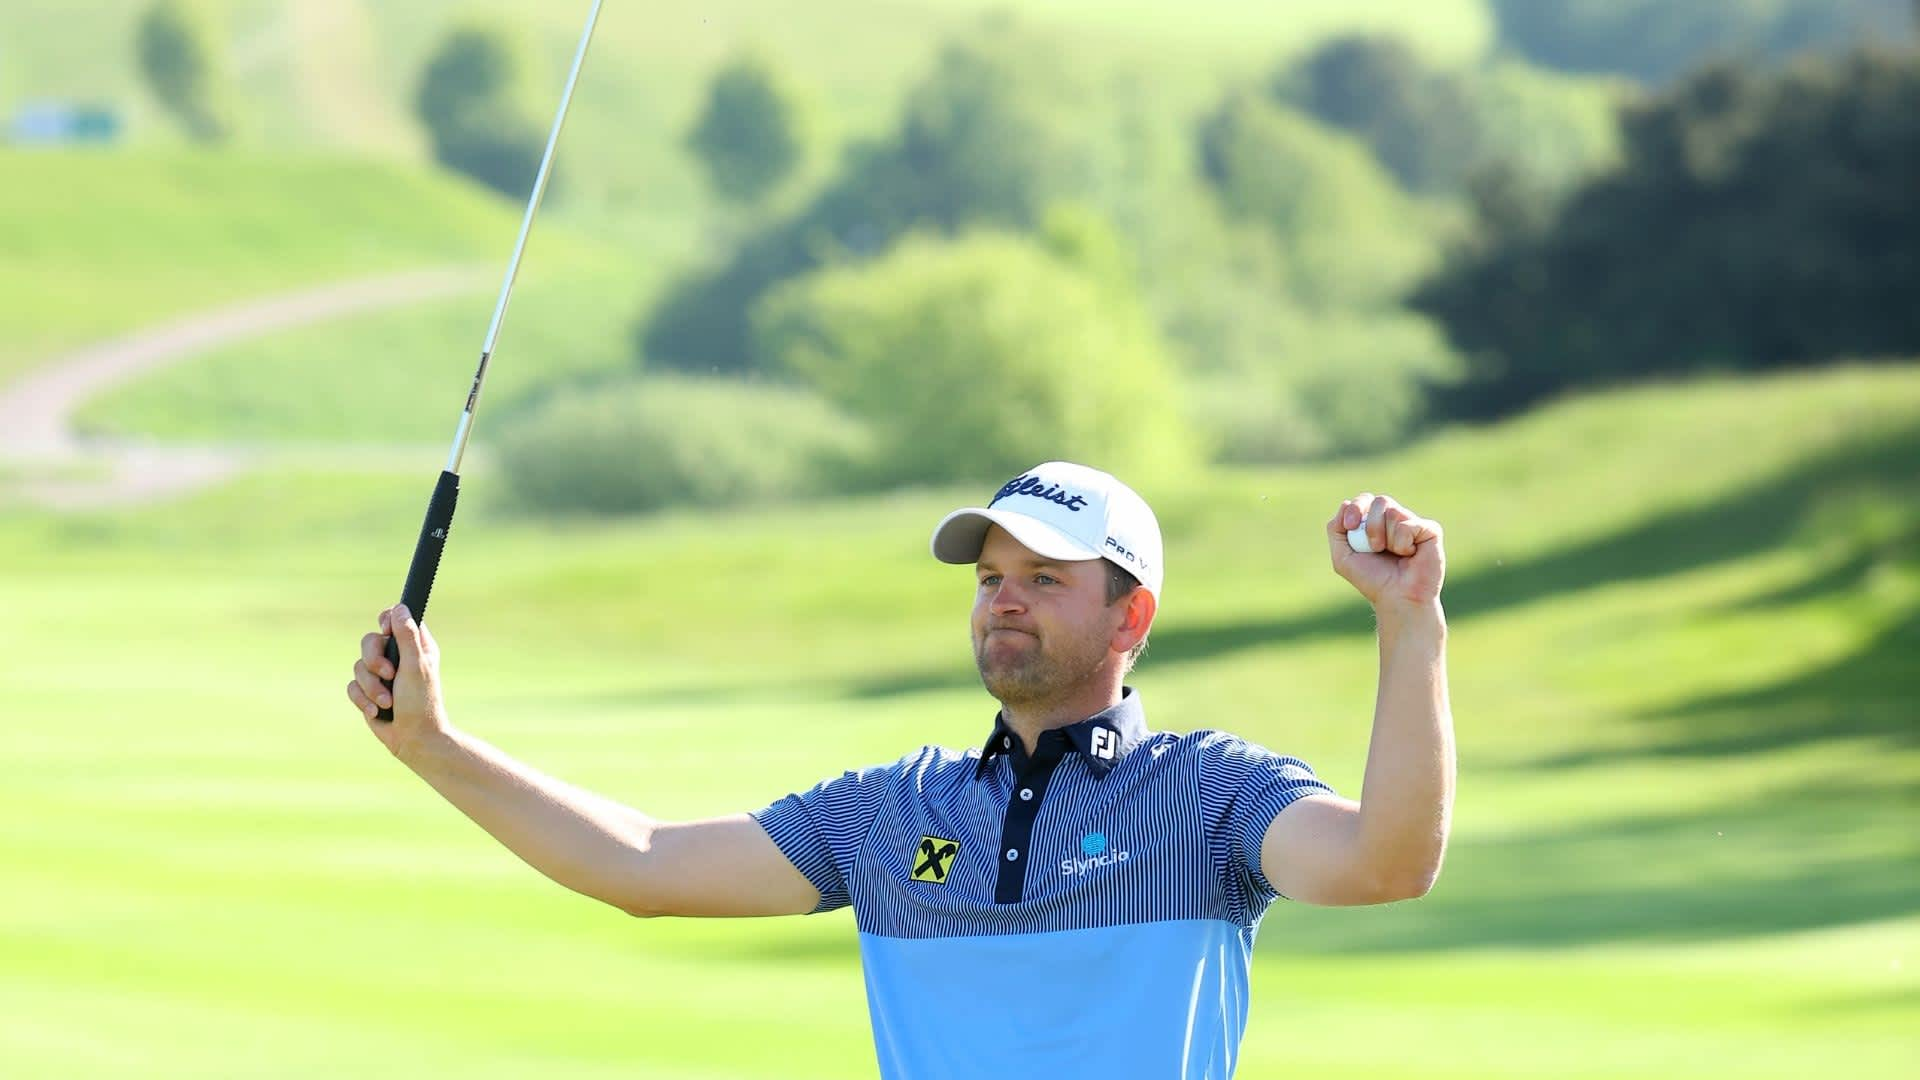 European Tour: Bernd Wiesberger wins the Made in HimmerLand presented by FREJA